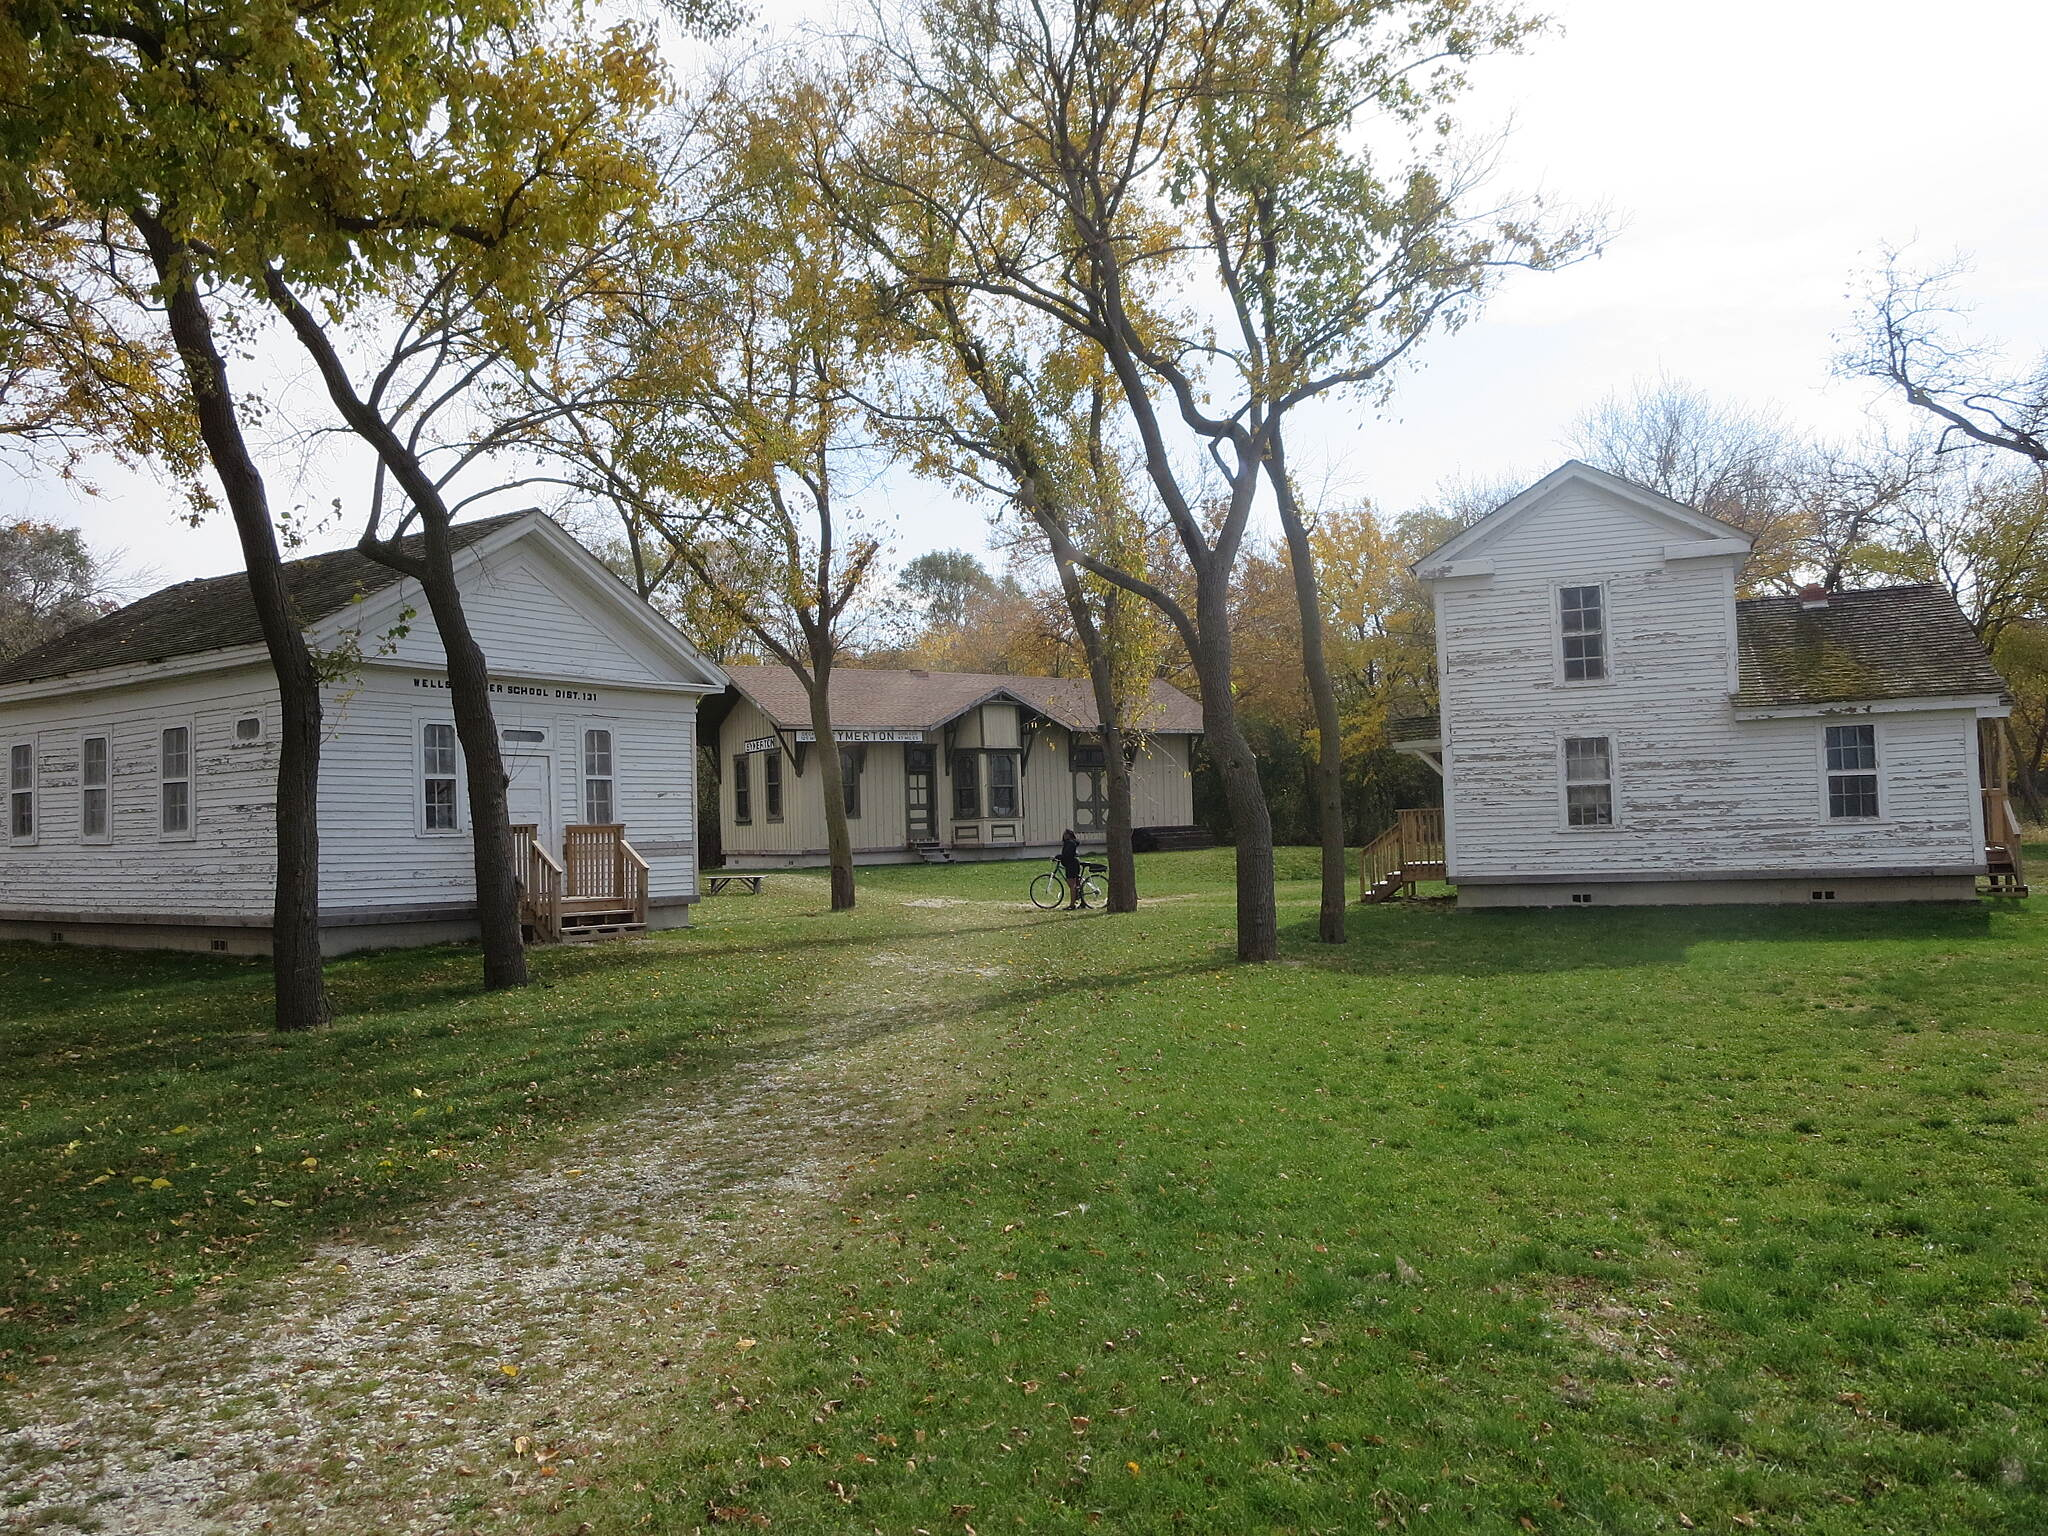 Illinois & Michigan Canal State Trail Heritage Village,Lockport